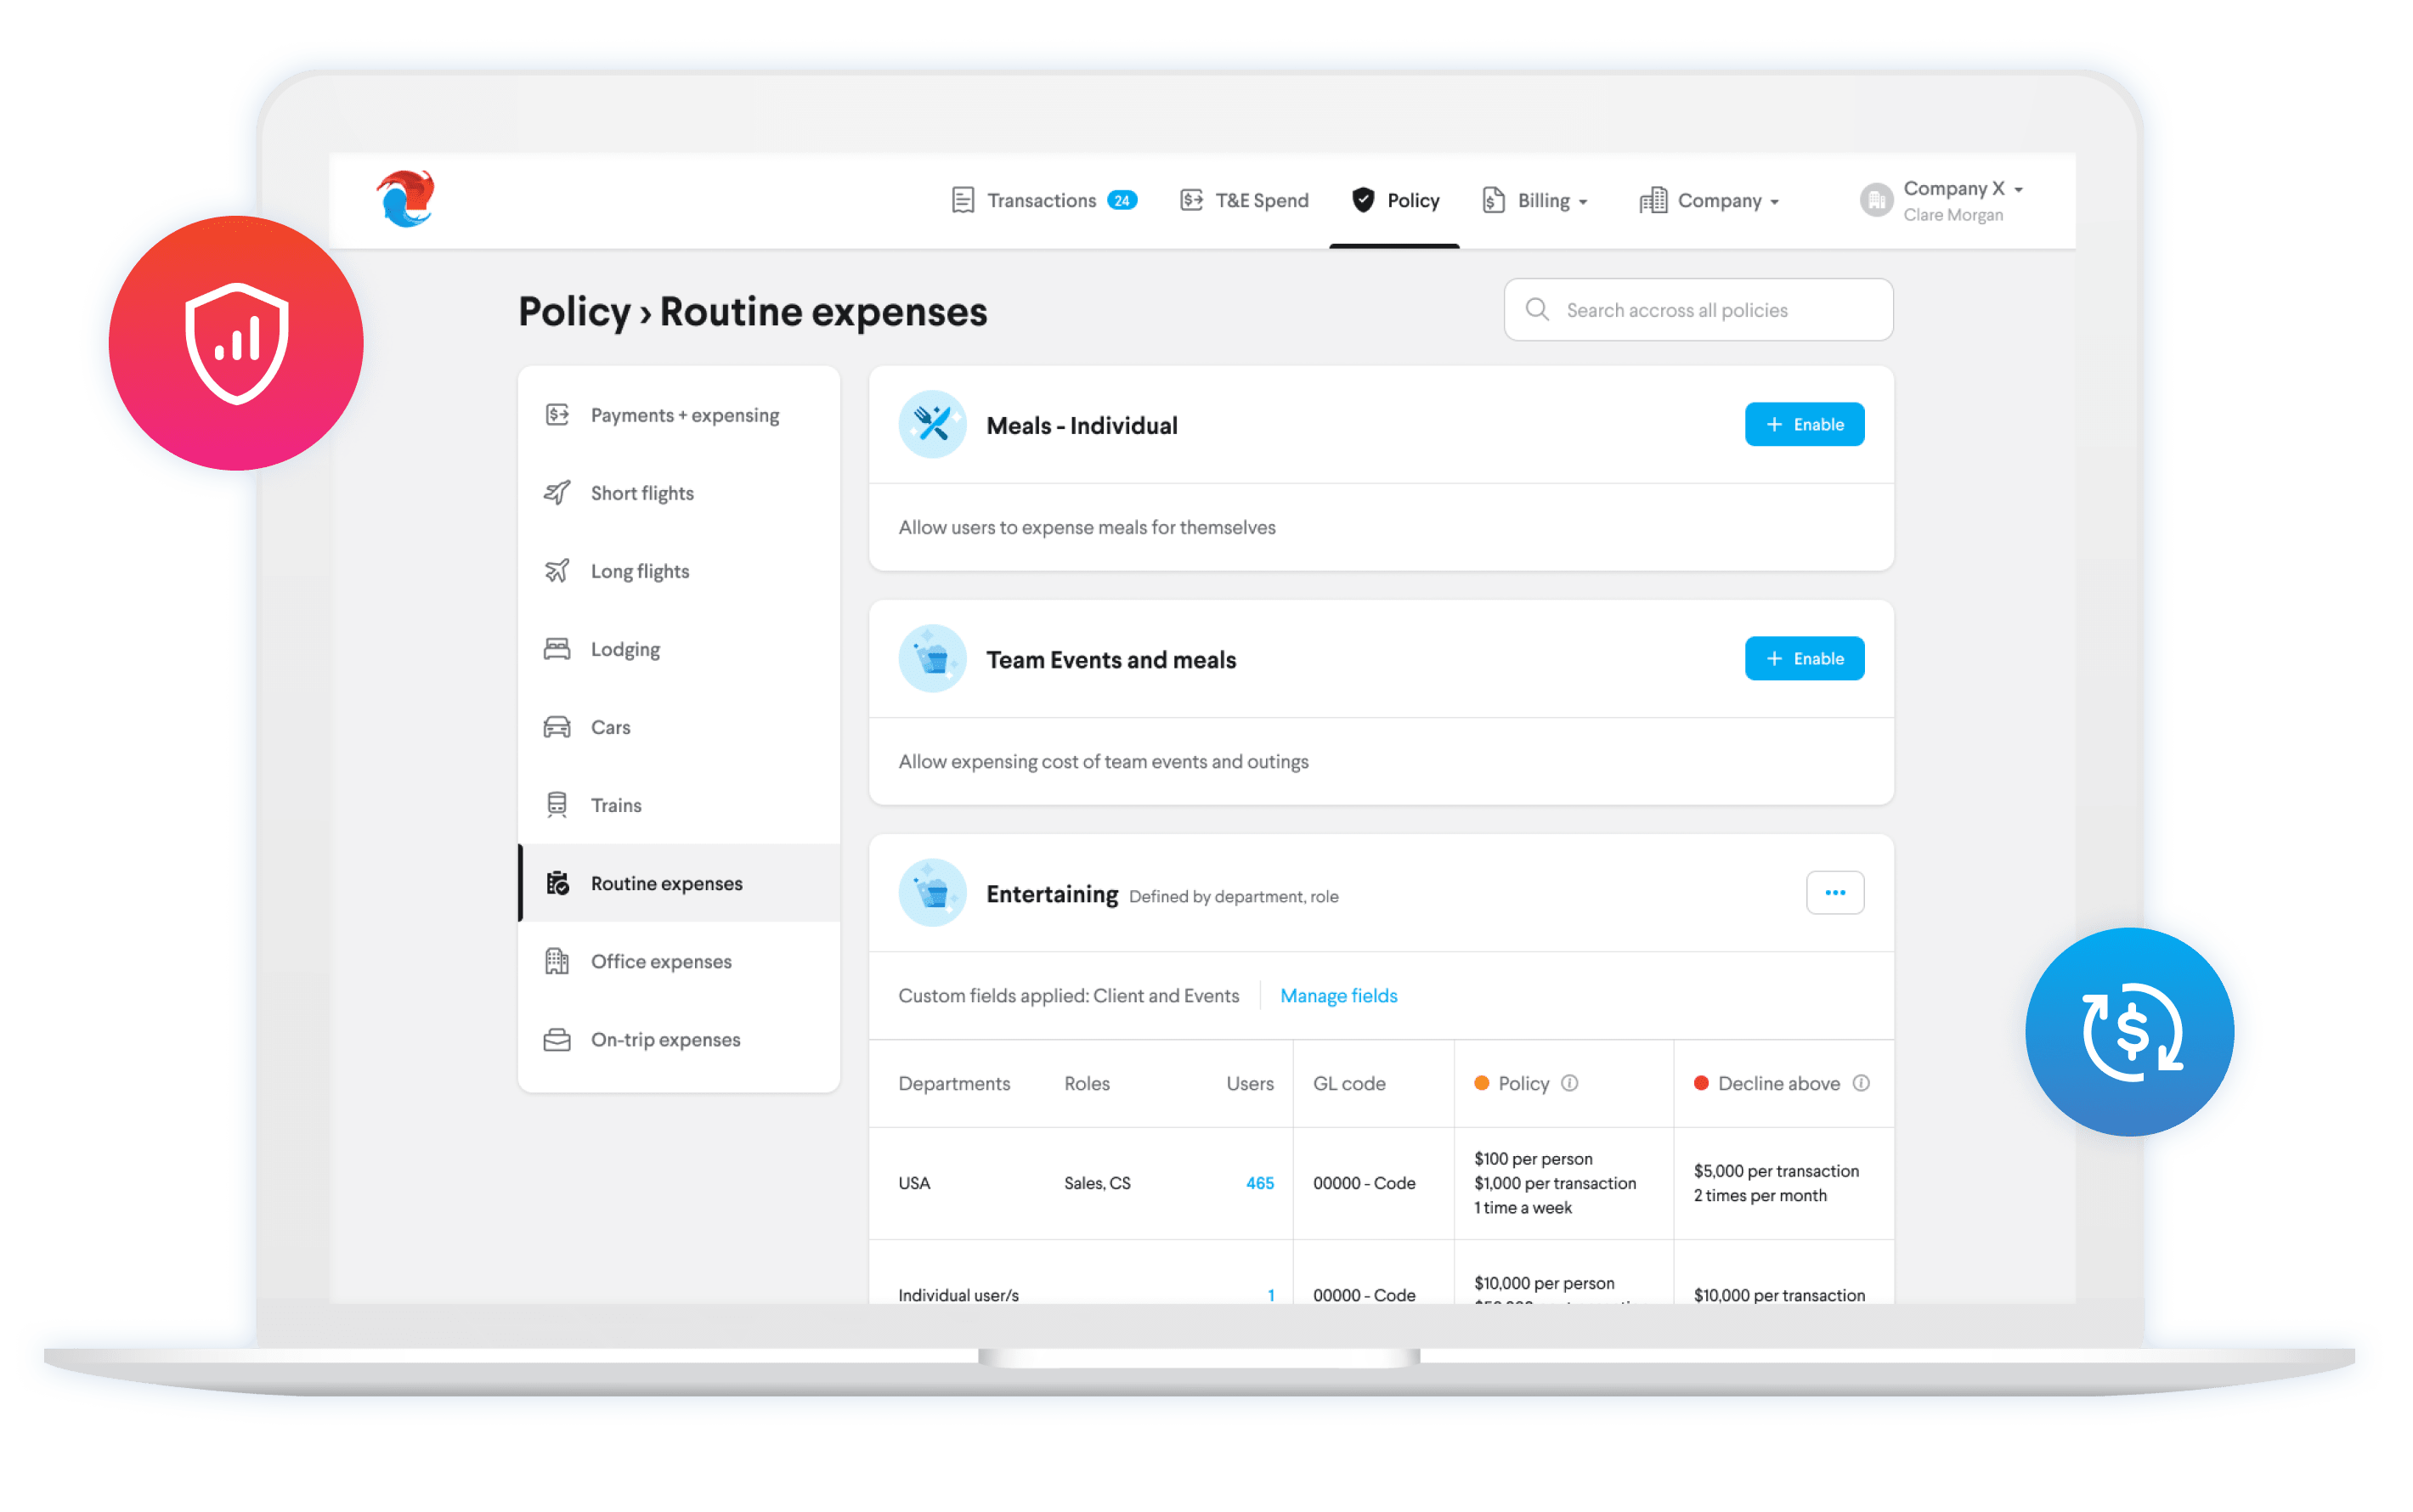 Screenshot showing TripActions' Policy tool and customization options.